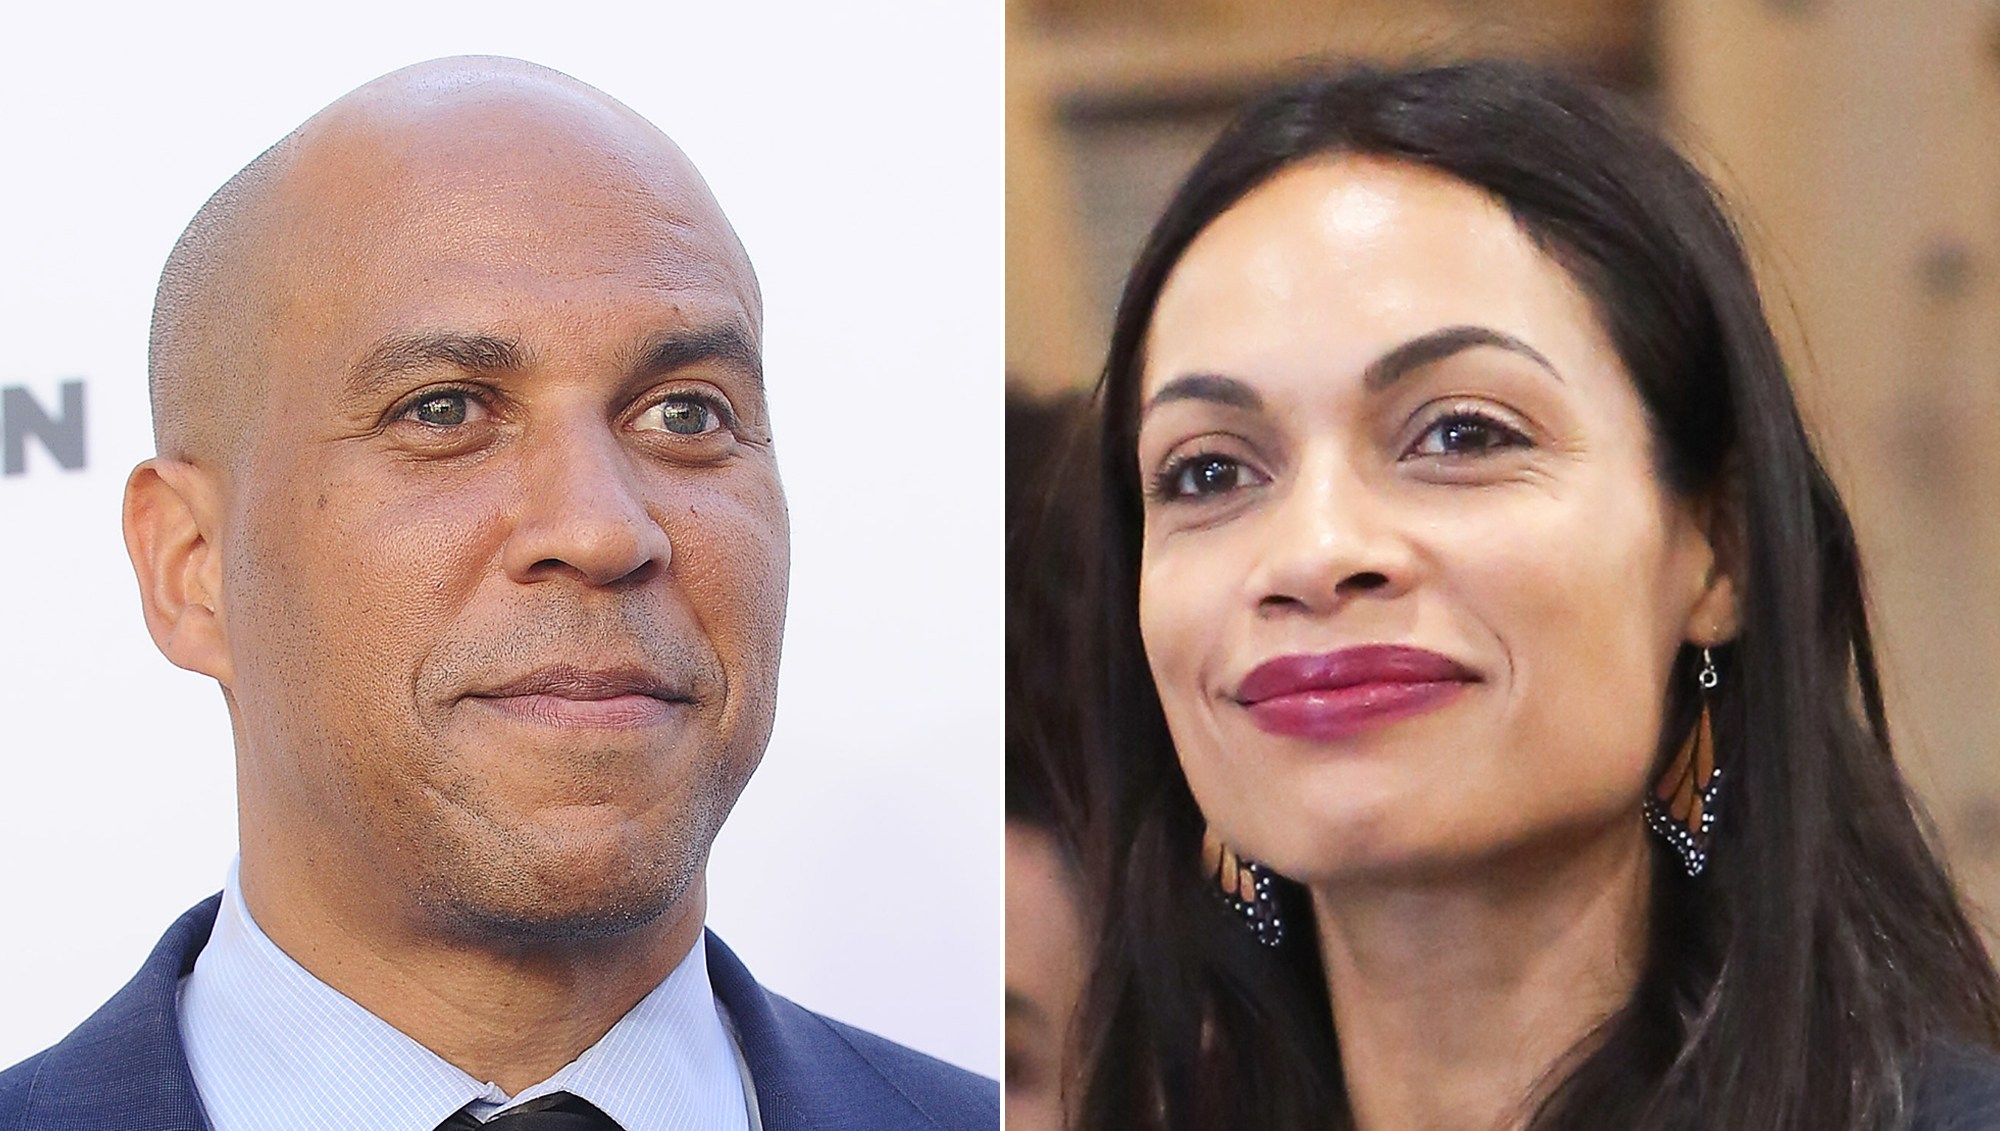 Cory Booker and Rosario Dawson Seen 'Holding Hands' at Theater Amid Dating Rumors